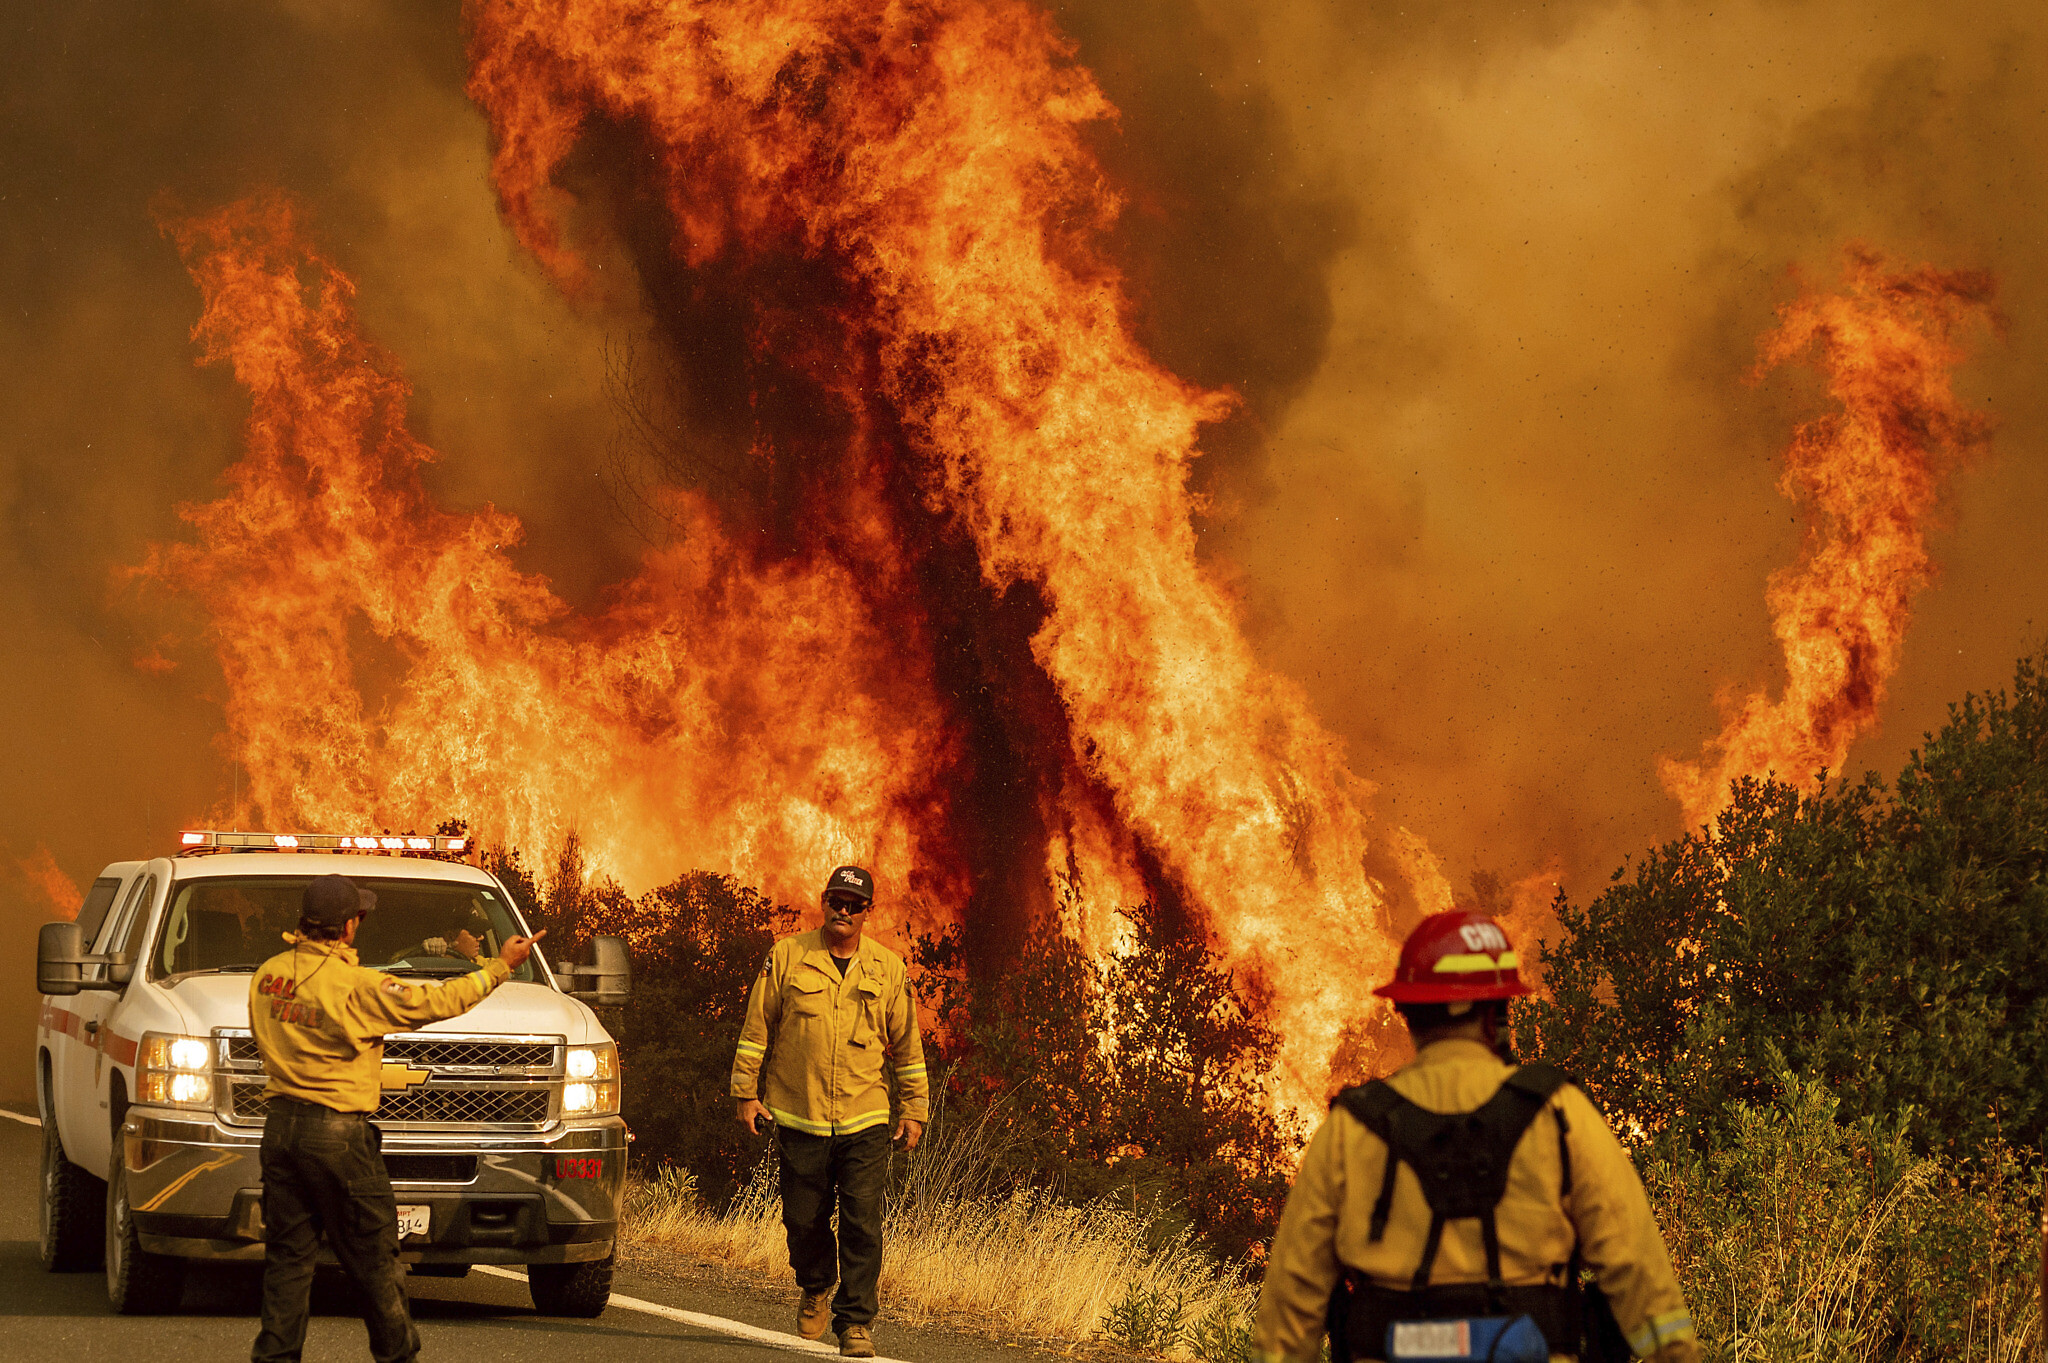 Firefighter killed at wildfire in Northern California forest